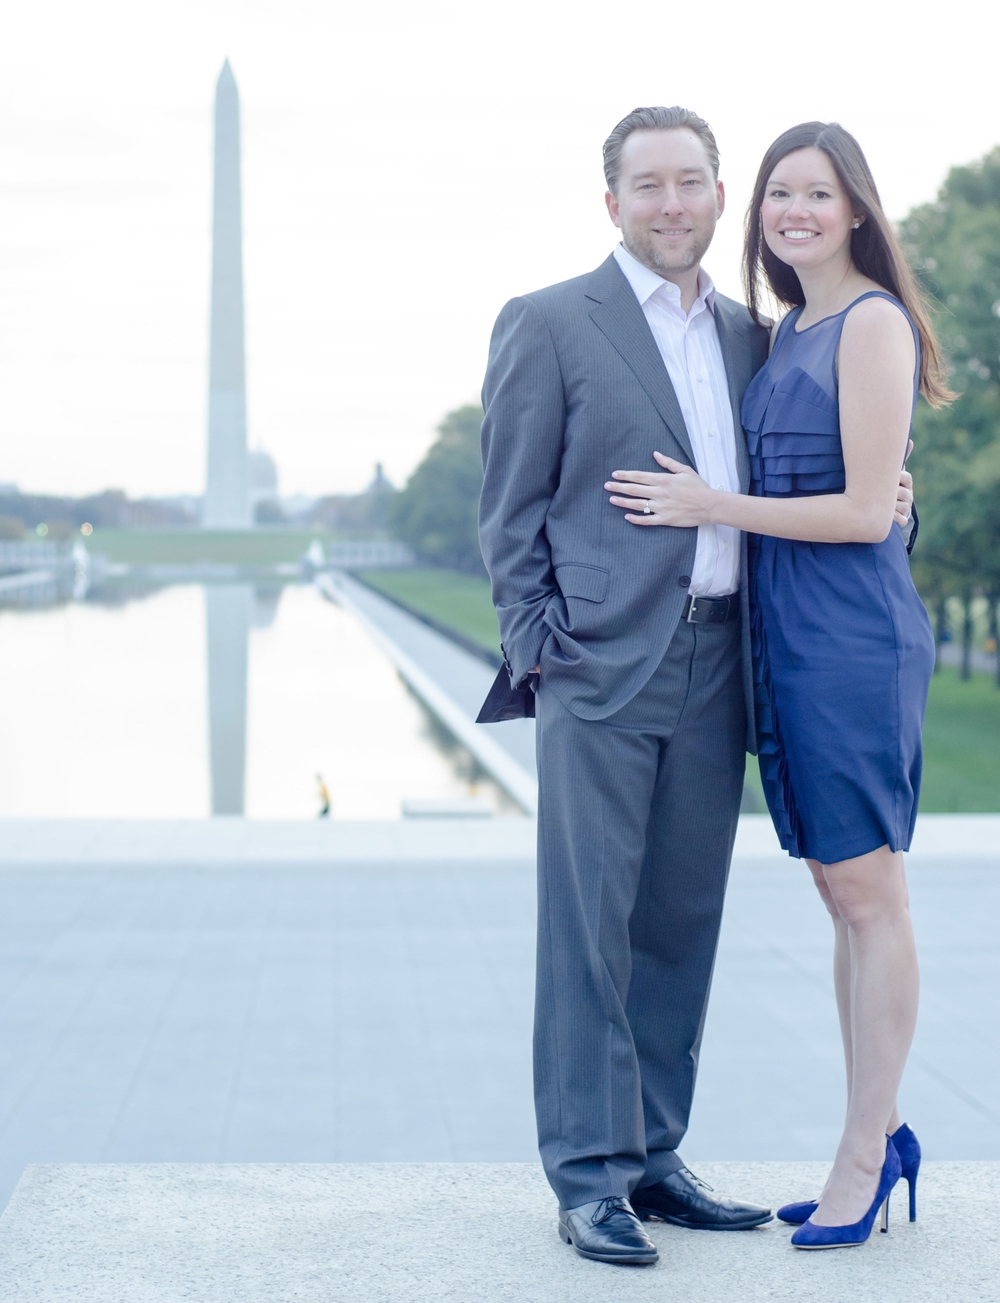 Washington Monument Engagement Shoot - NickMcKetaPhoto.com